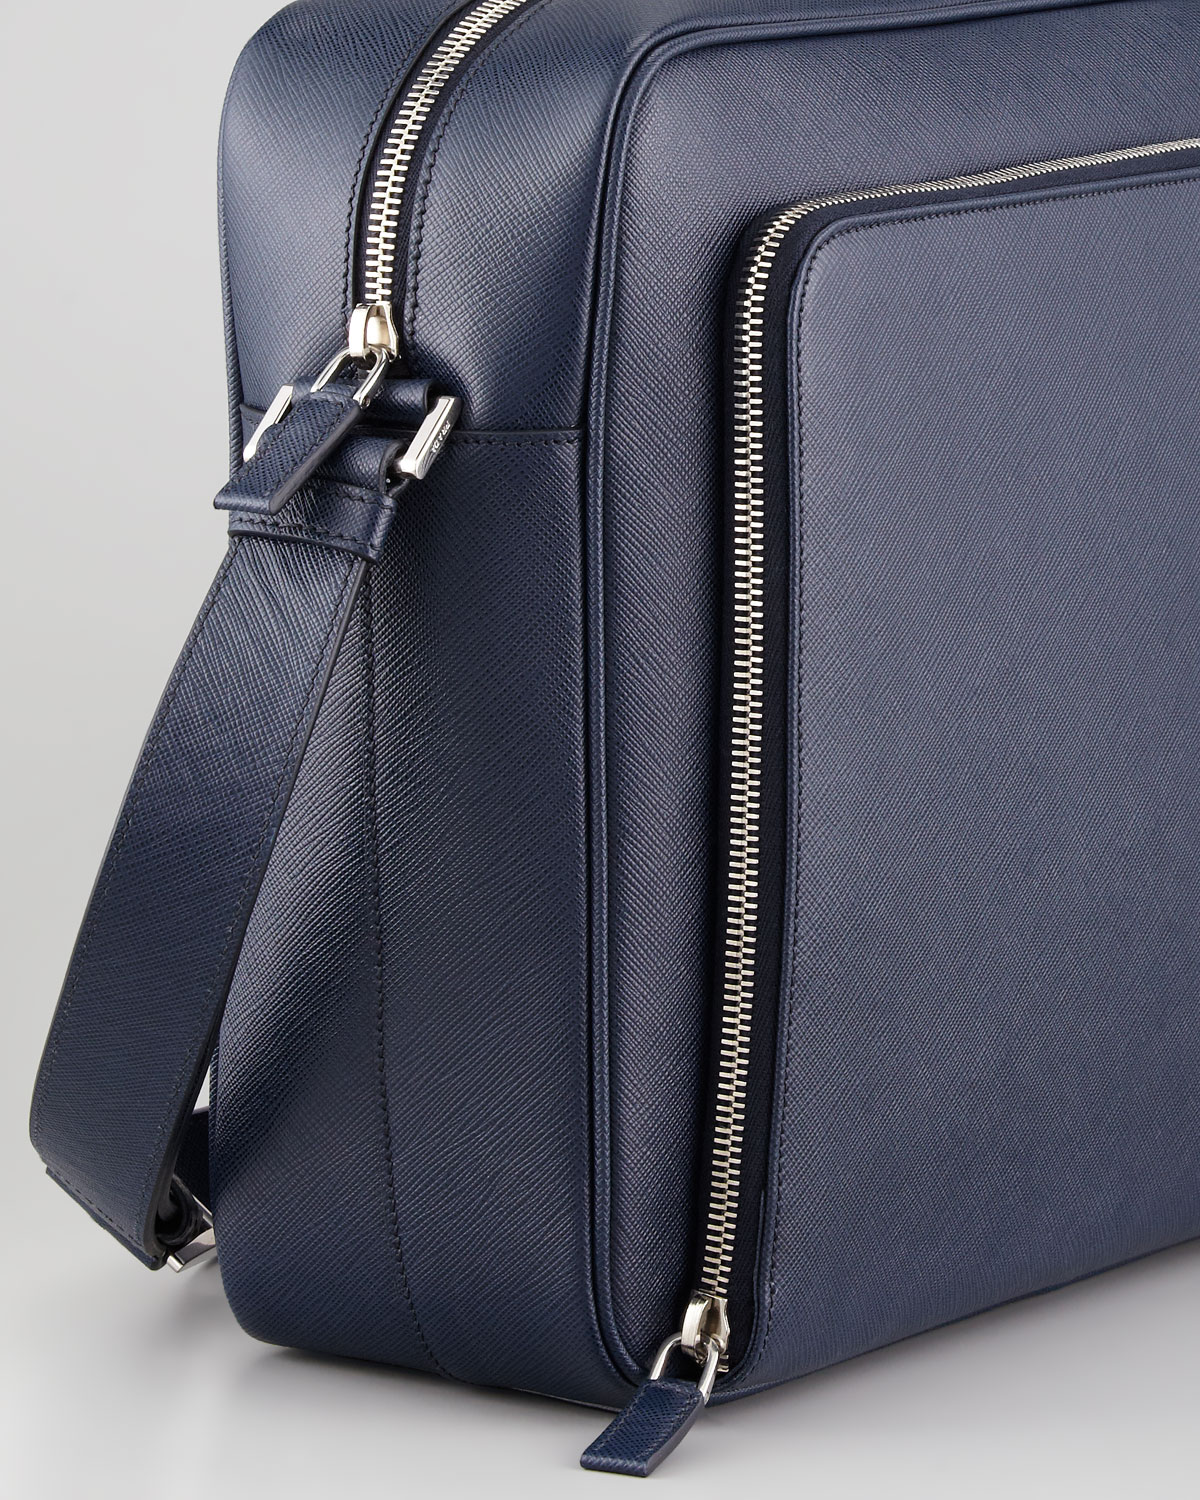 2a763645cbc9 Lyst - Prada Saffiano Ipad Messenger Bag in Blue for Men